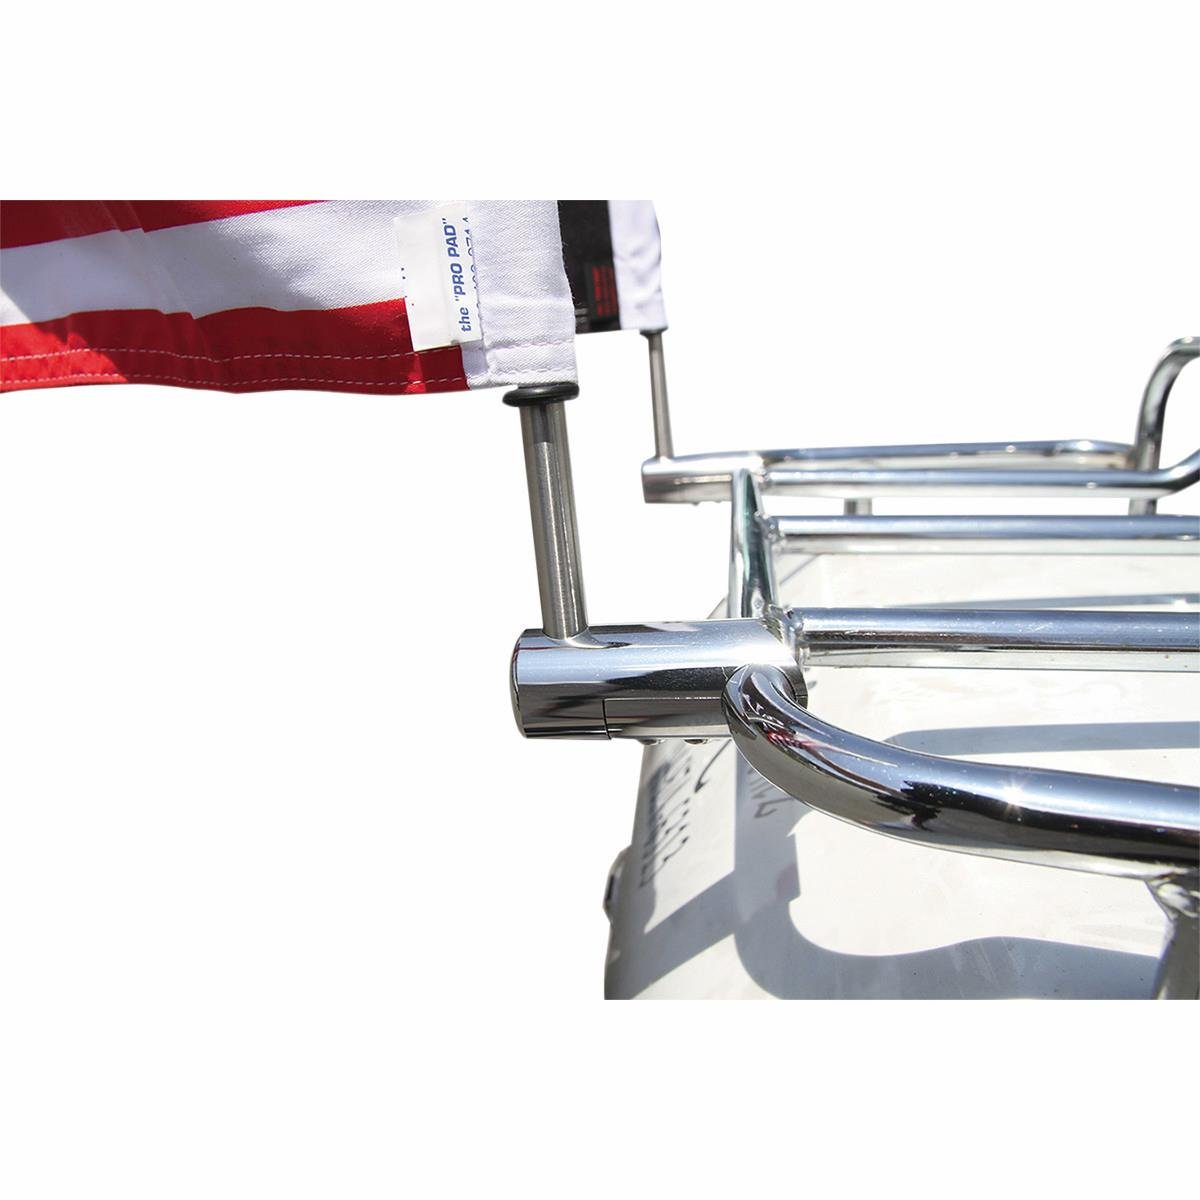 Pro Pad RFM-RDHB58 Extended Style Luggage Rack 5//8-inch Motorcycle Highway Flag Mount Kit for Horizontal Round Bar Stainless Steel